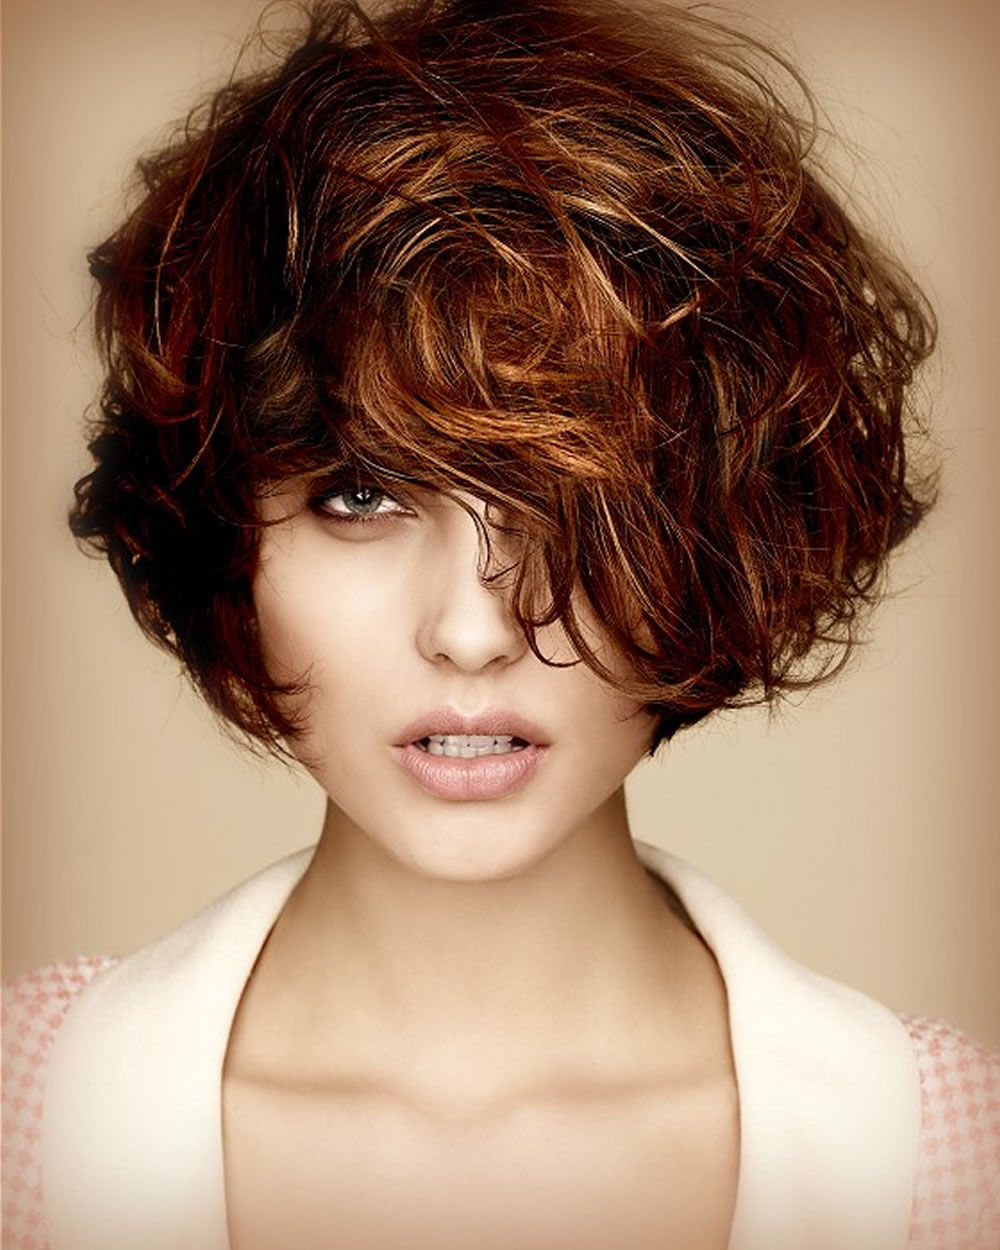 Short Bob Hairstyles & Haircuts For Women 2018 2019 Messy Short With Messy Short Haircuts For Women (View 19 of 25)